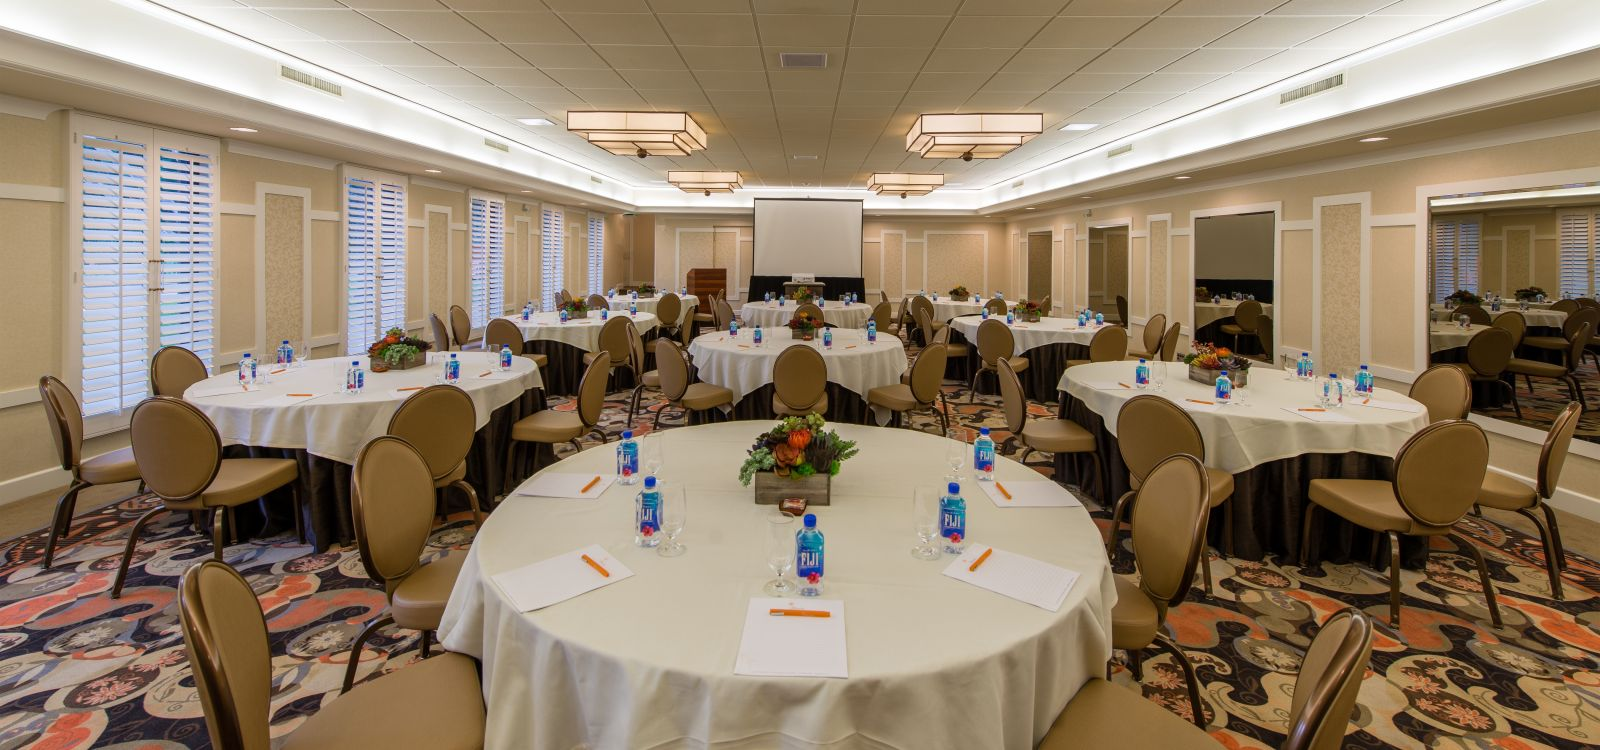 Meeting space at The Garland - Ballroom